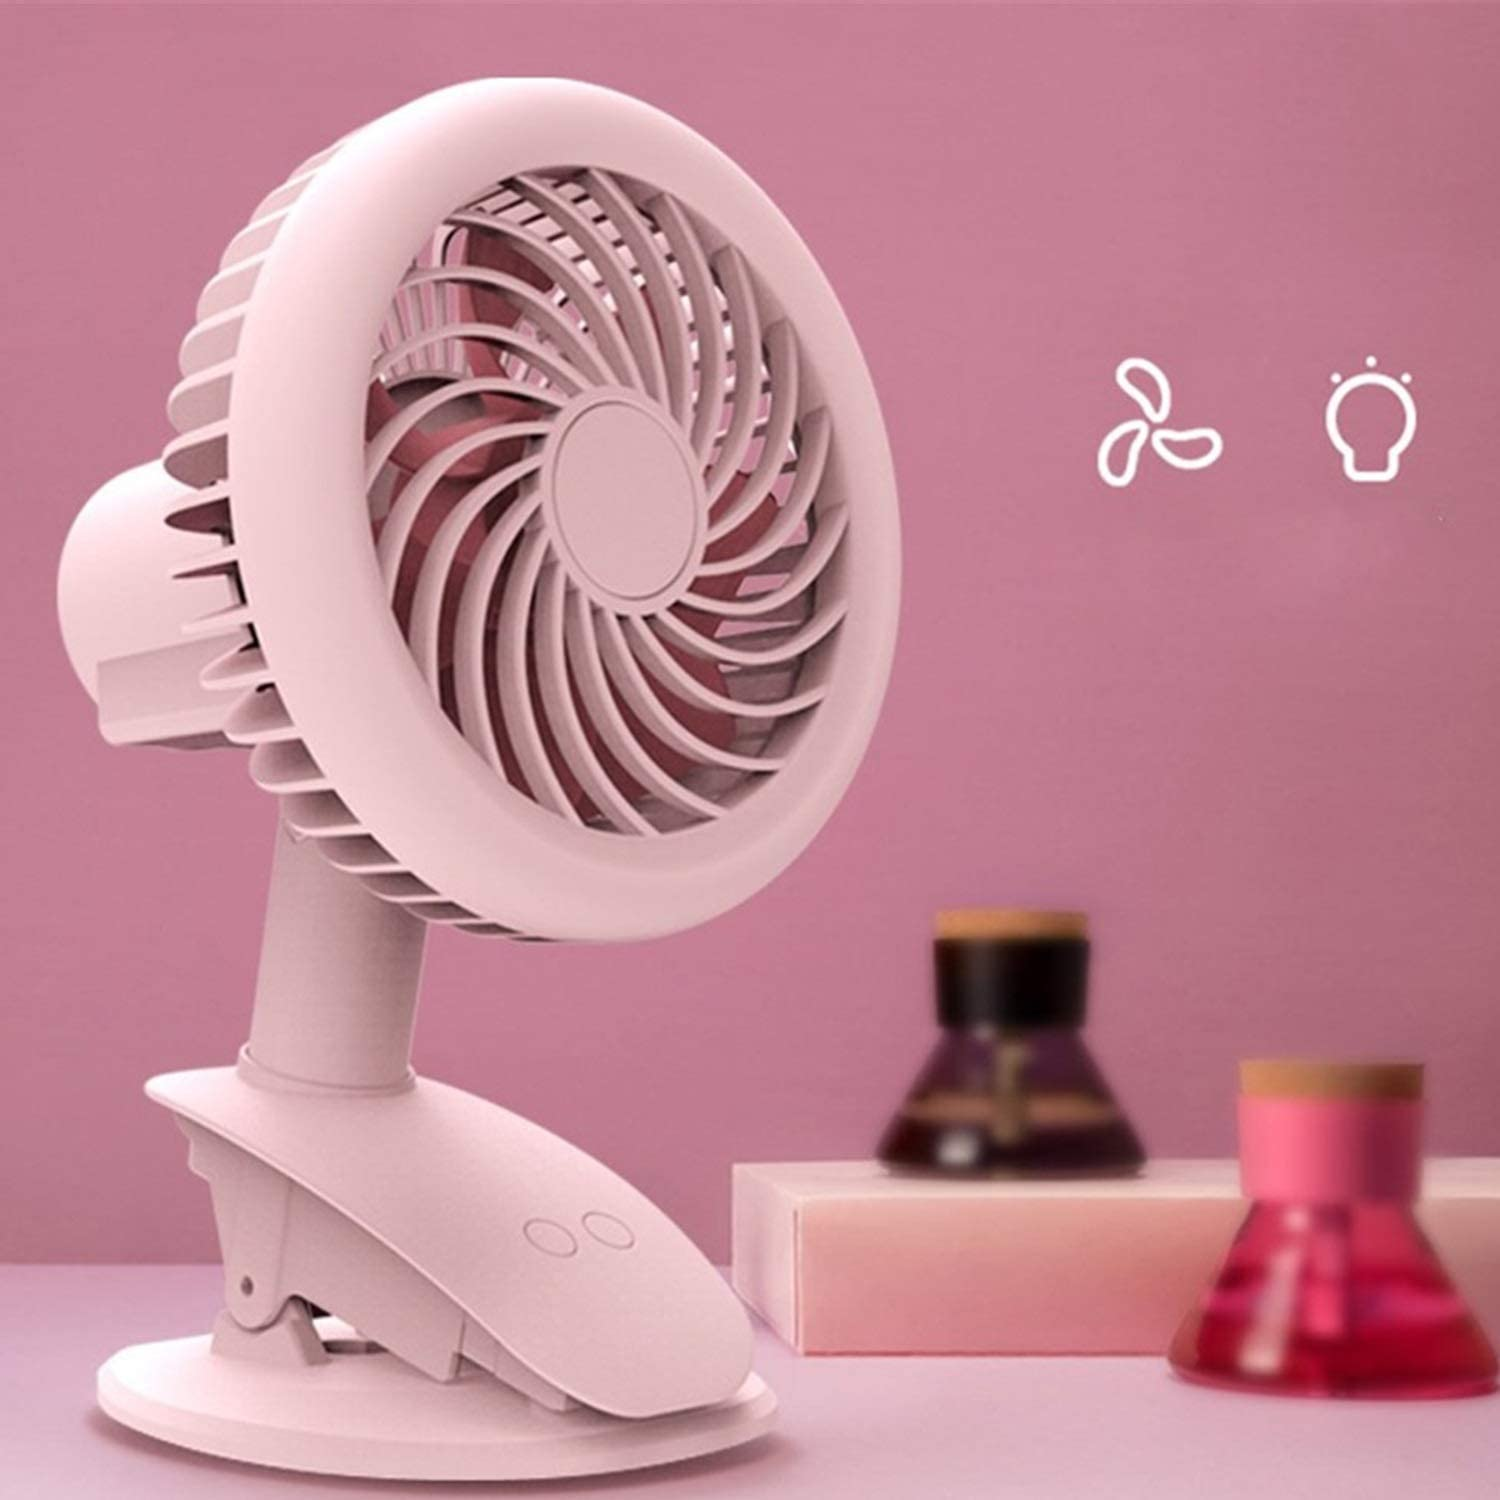 Fan Fashion Clip Fan Night Light Dual-use Fan Shake Head USB Charging Mini Fan Handheld Desktop Fan Mini Portable Cooling Fan Color : White